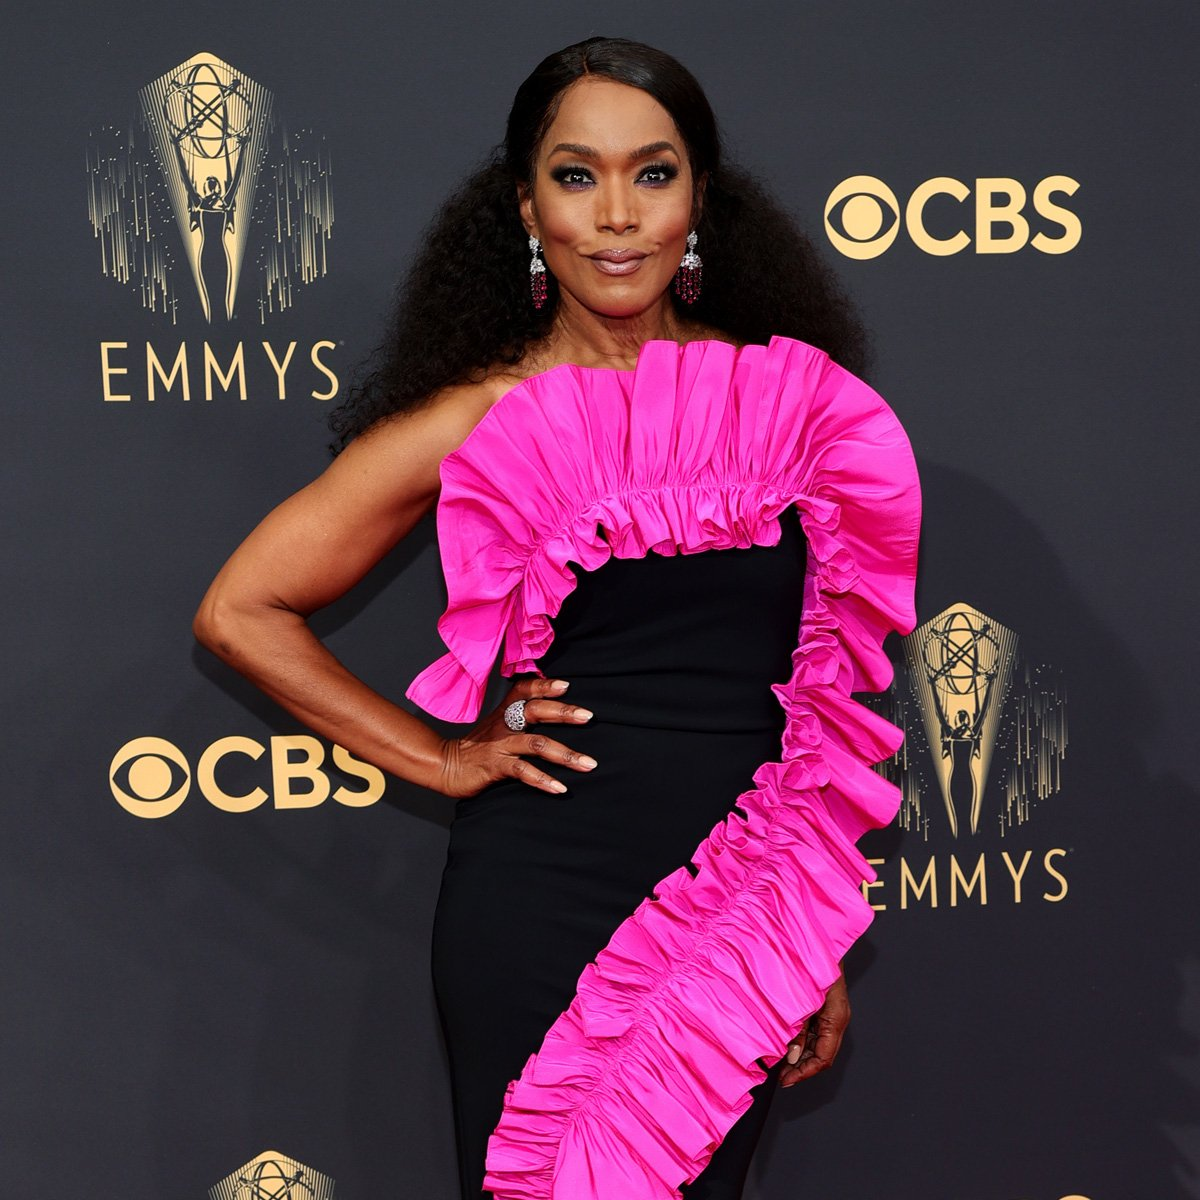 Angela Bassett Brings the Wow Factor to the 2021 Emmys With Electrifying Look